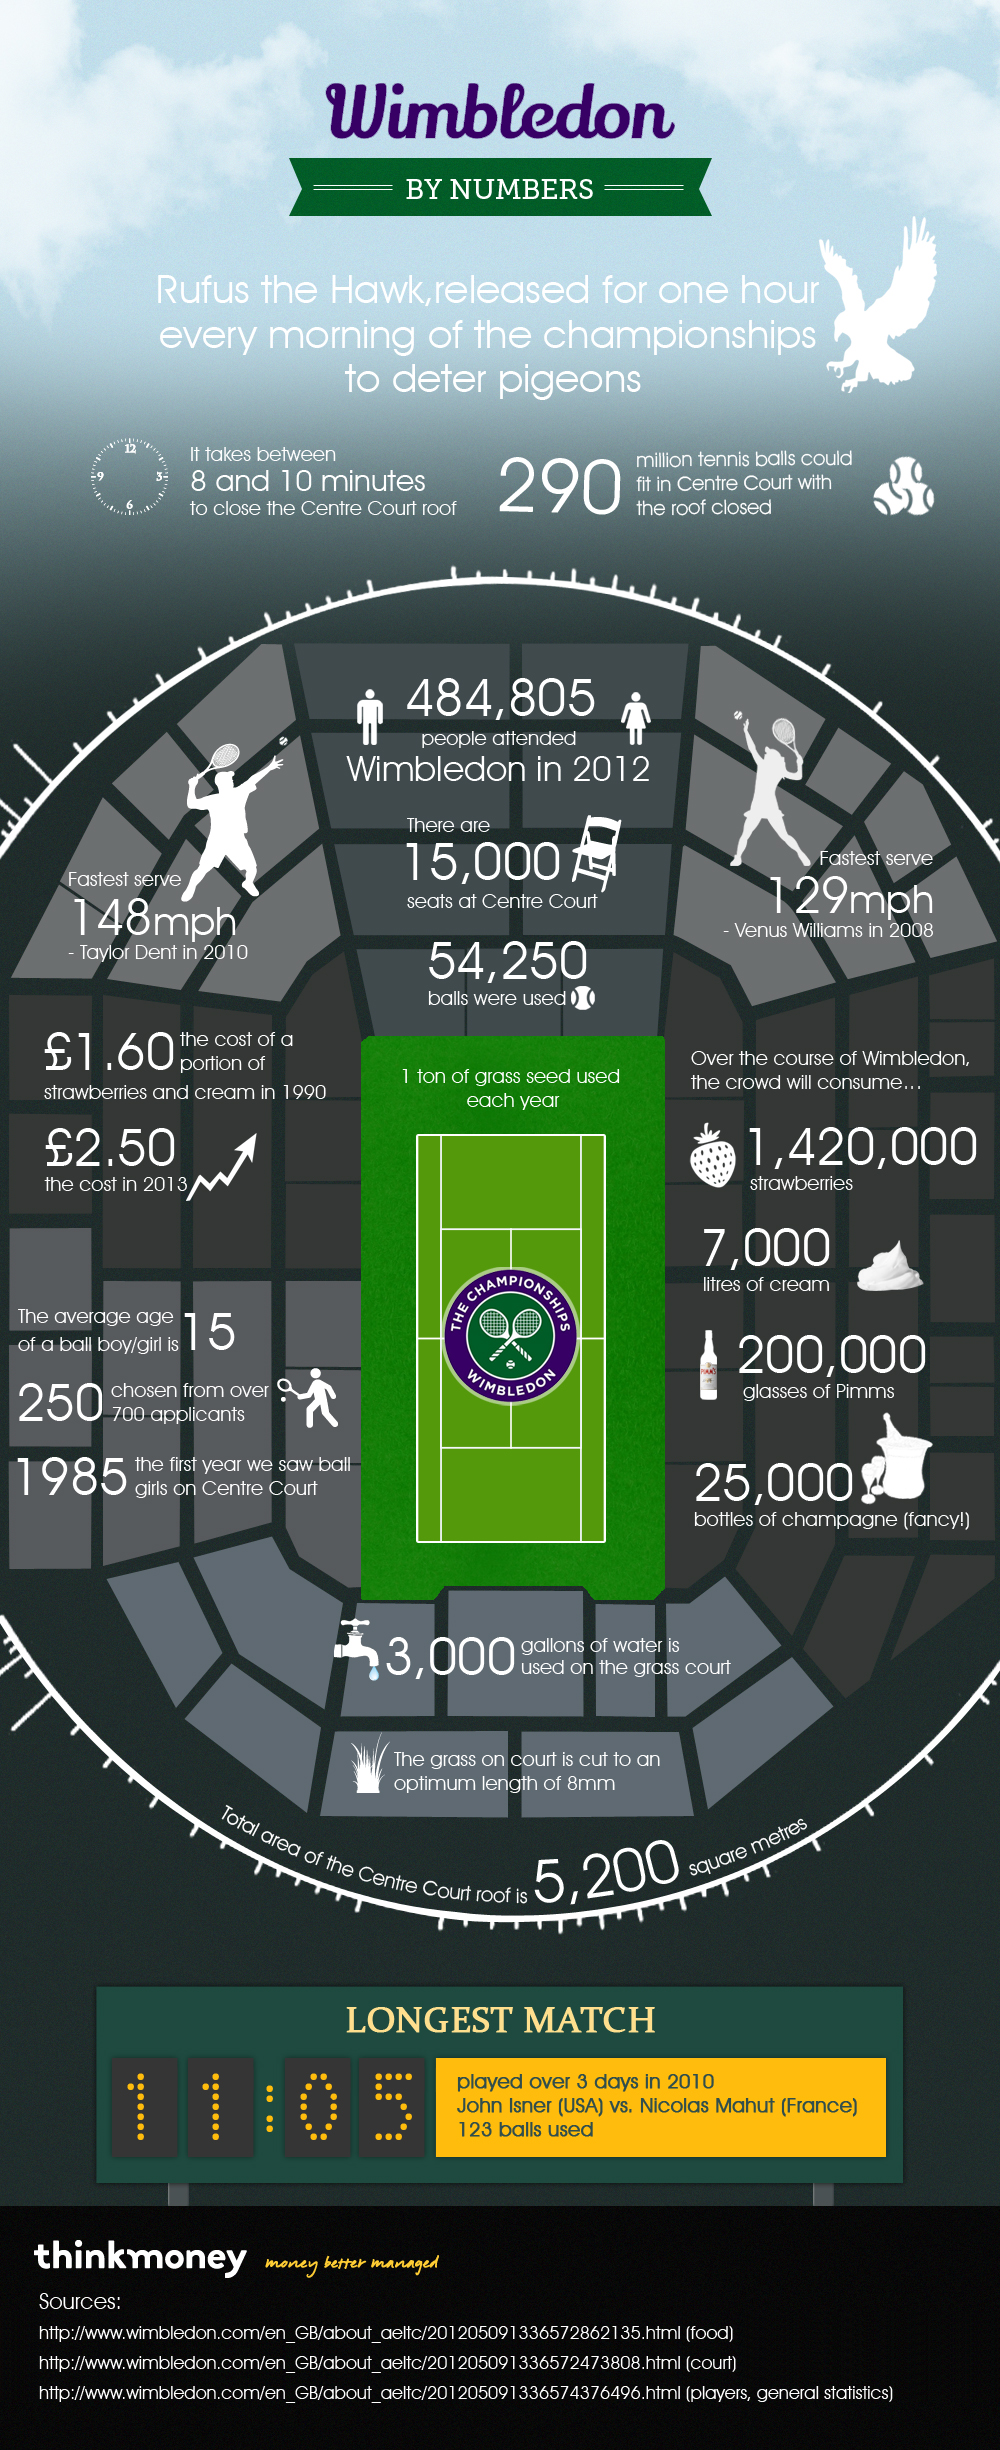 Complete statistics about Wimbledon championship